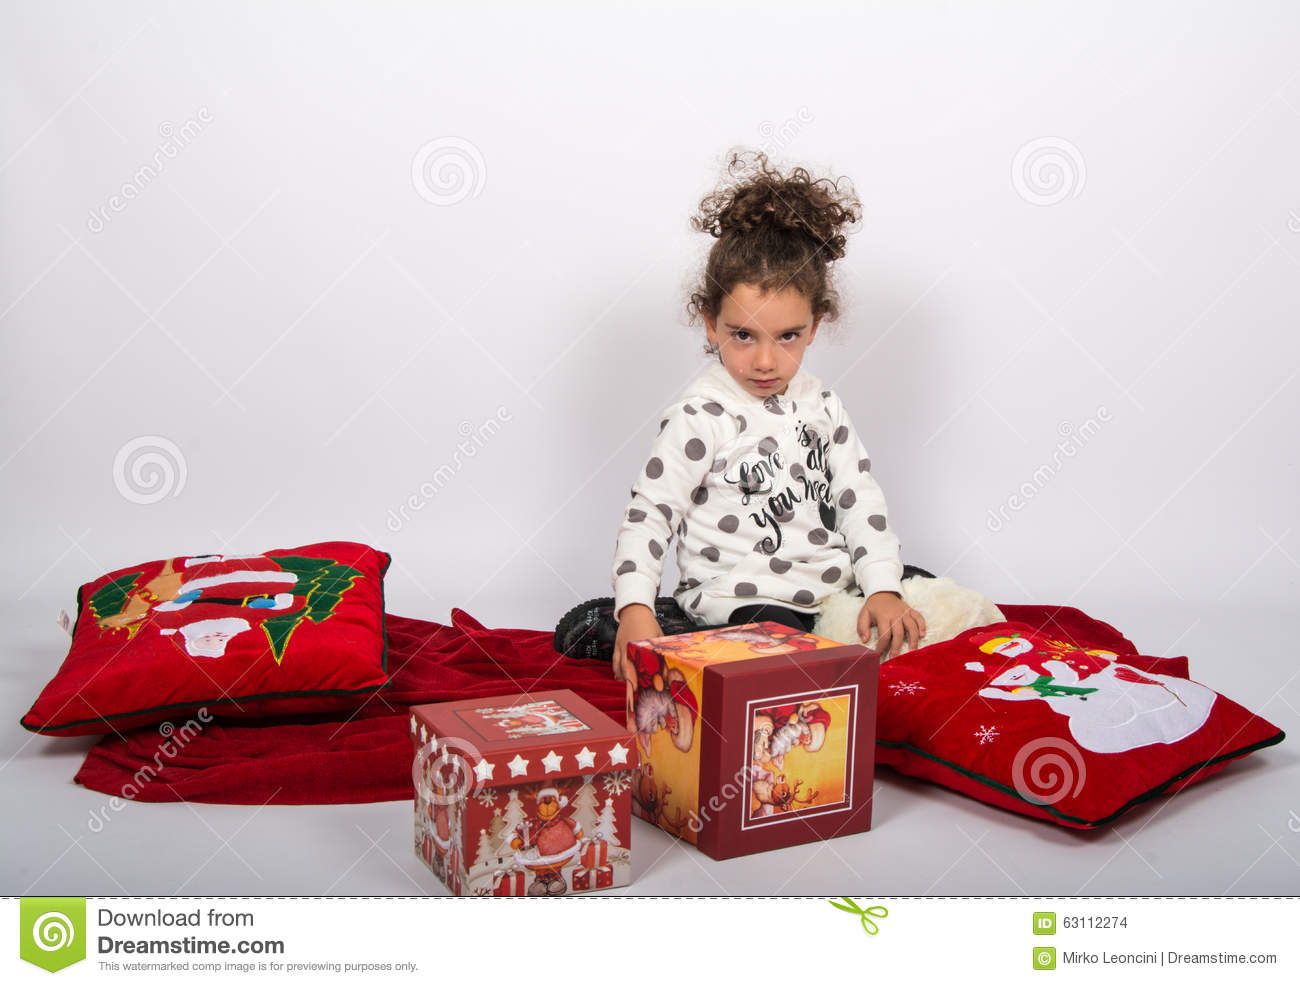 Native and tears stock photo. Image of children, curls - 63112274